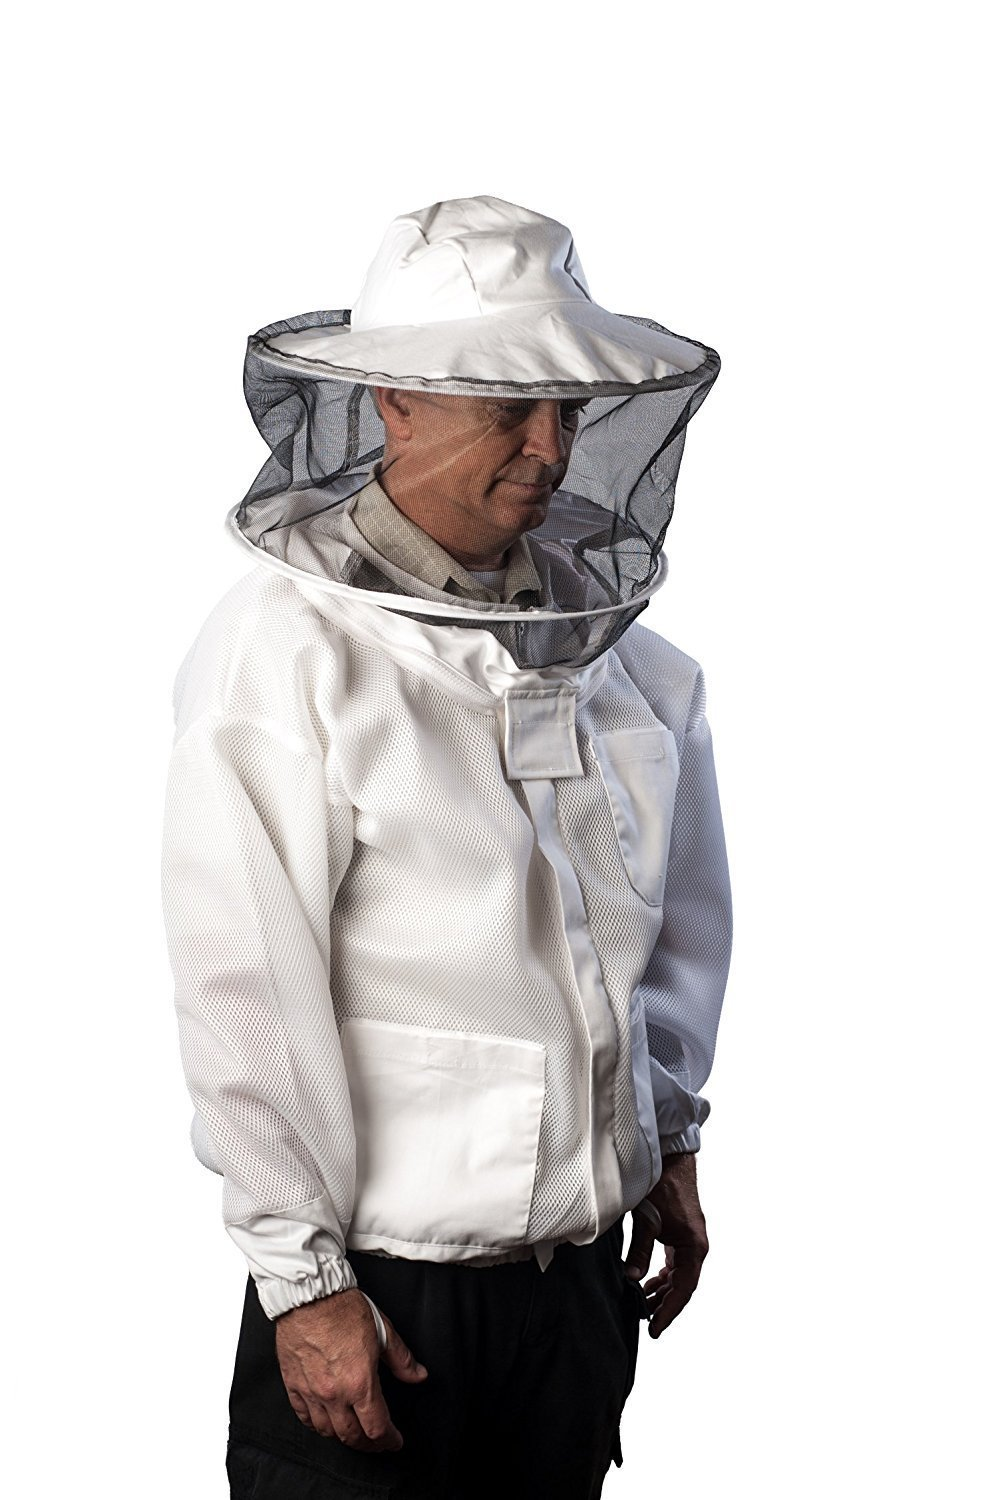 Pro-Breeze Ventilated Beekeeping Jacket For Men/Women By Forest Beekeeping Supply   Round Vented Apiary Jacket W/Veil Hood For Beginner/Commercial Beekeepers   Brass Zippers and Thumb Straps (X-LARGE) by FOREST BEEKEEPING SUPPLY